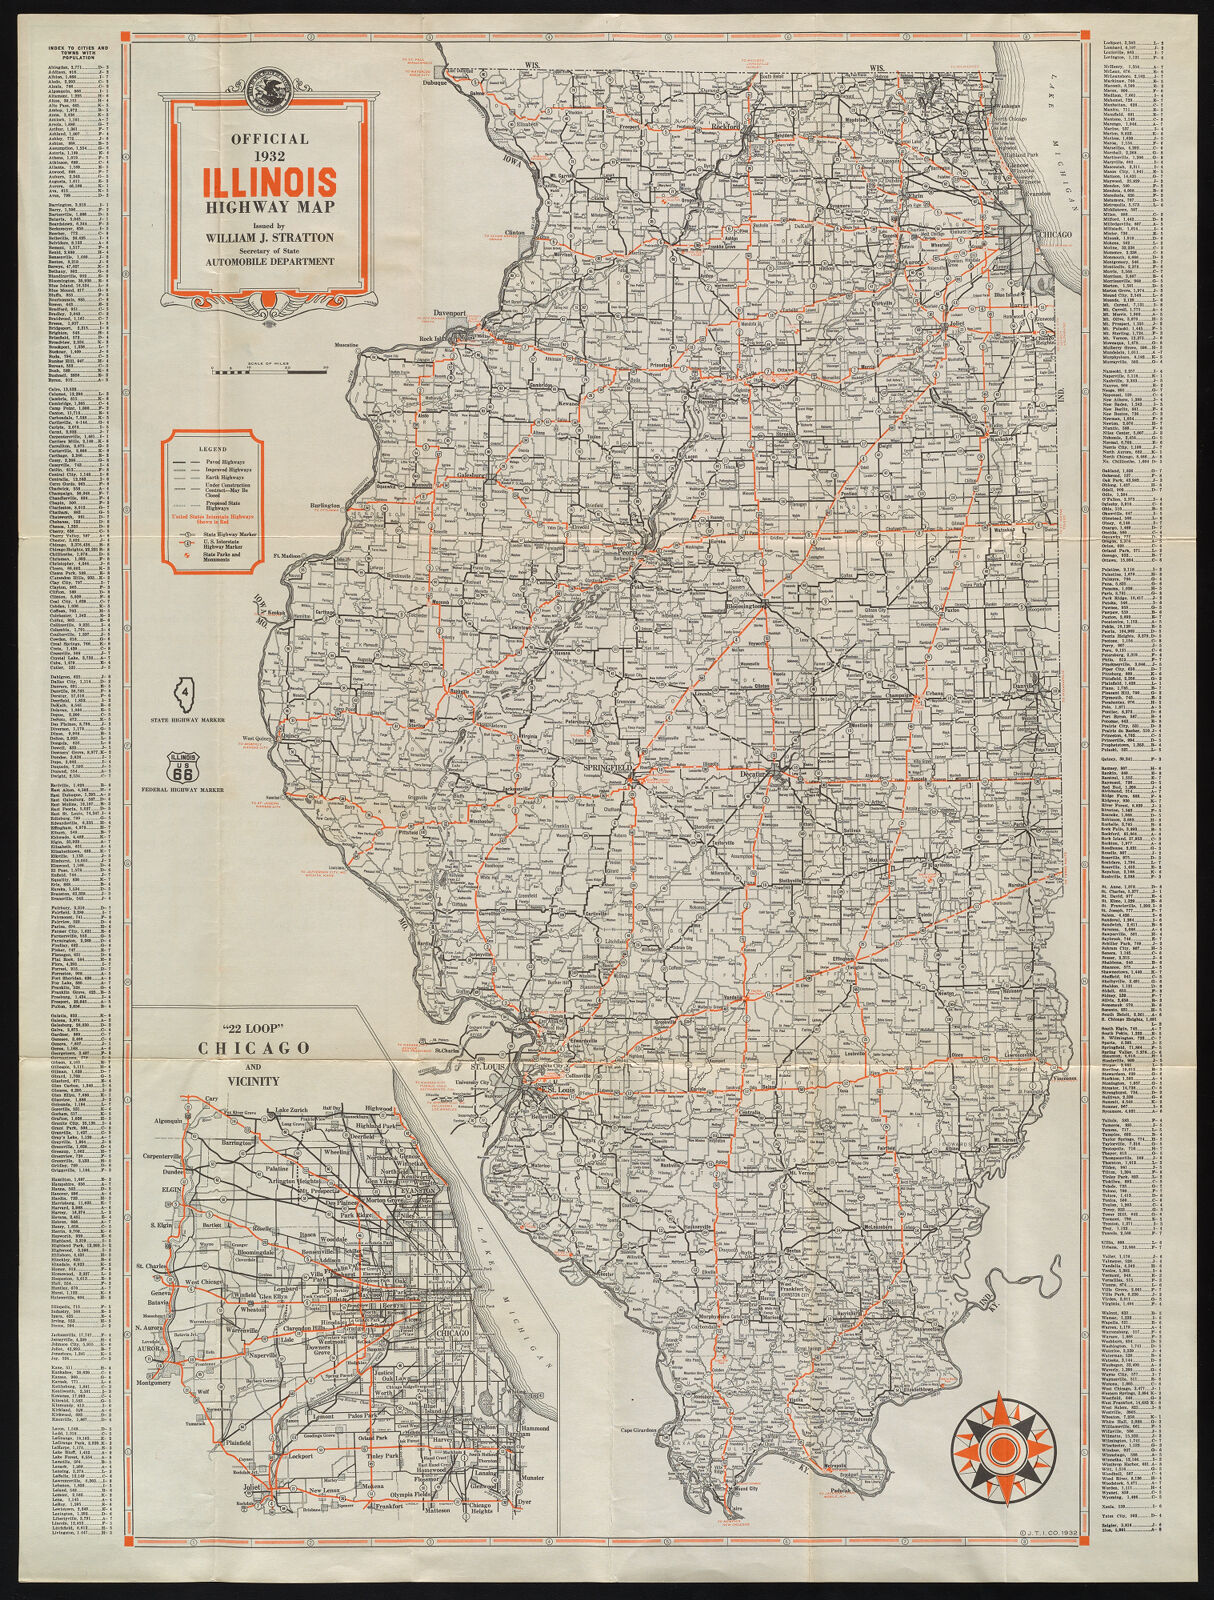 Official Illinois Highway Map, 1932 | Digital Collections at the ...